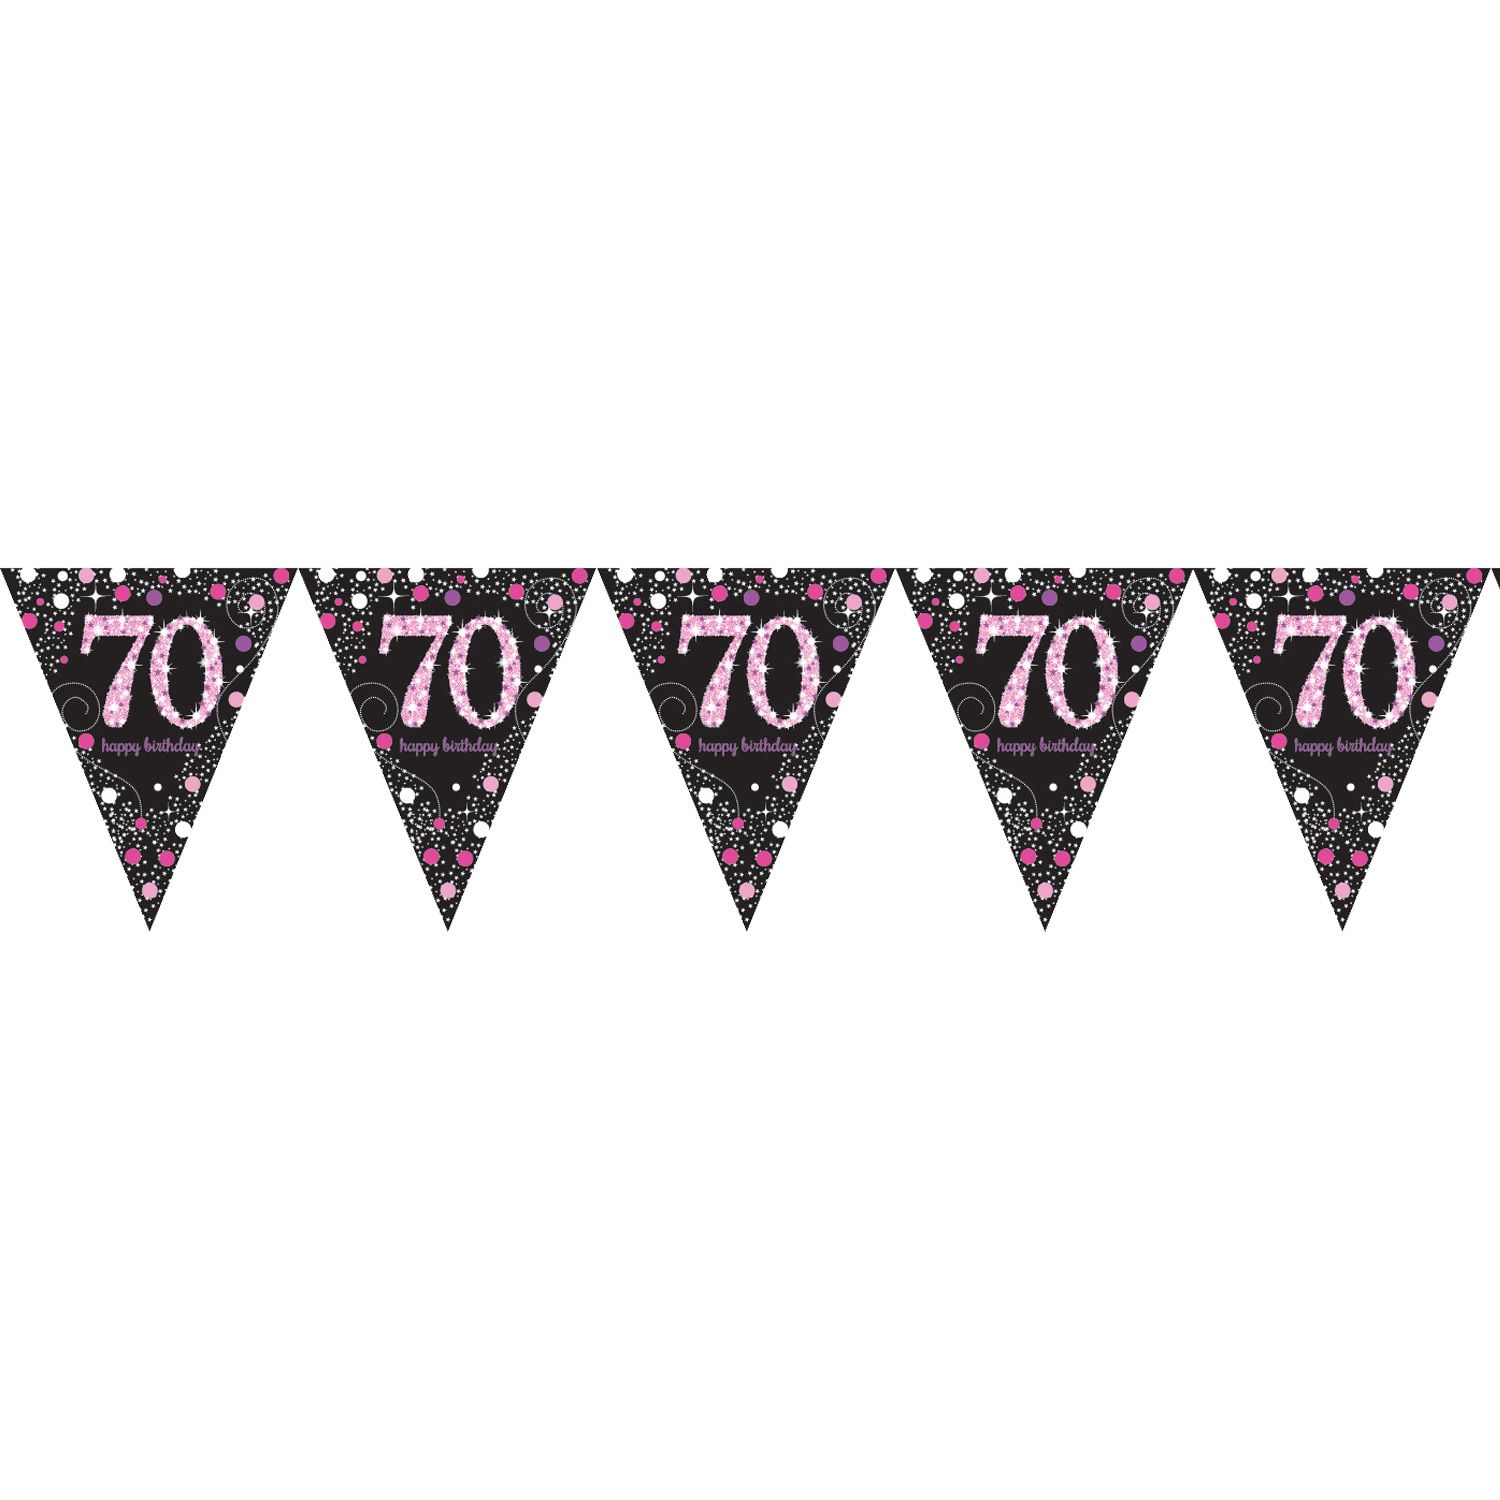 70TH BIRTHDAY PENNANT FLAG BUNTING - PINK & BLACK